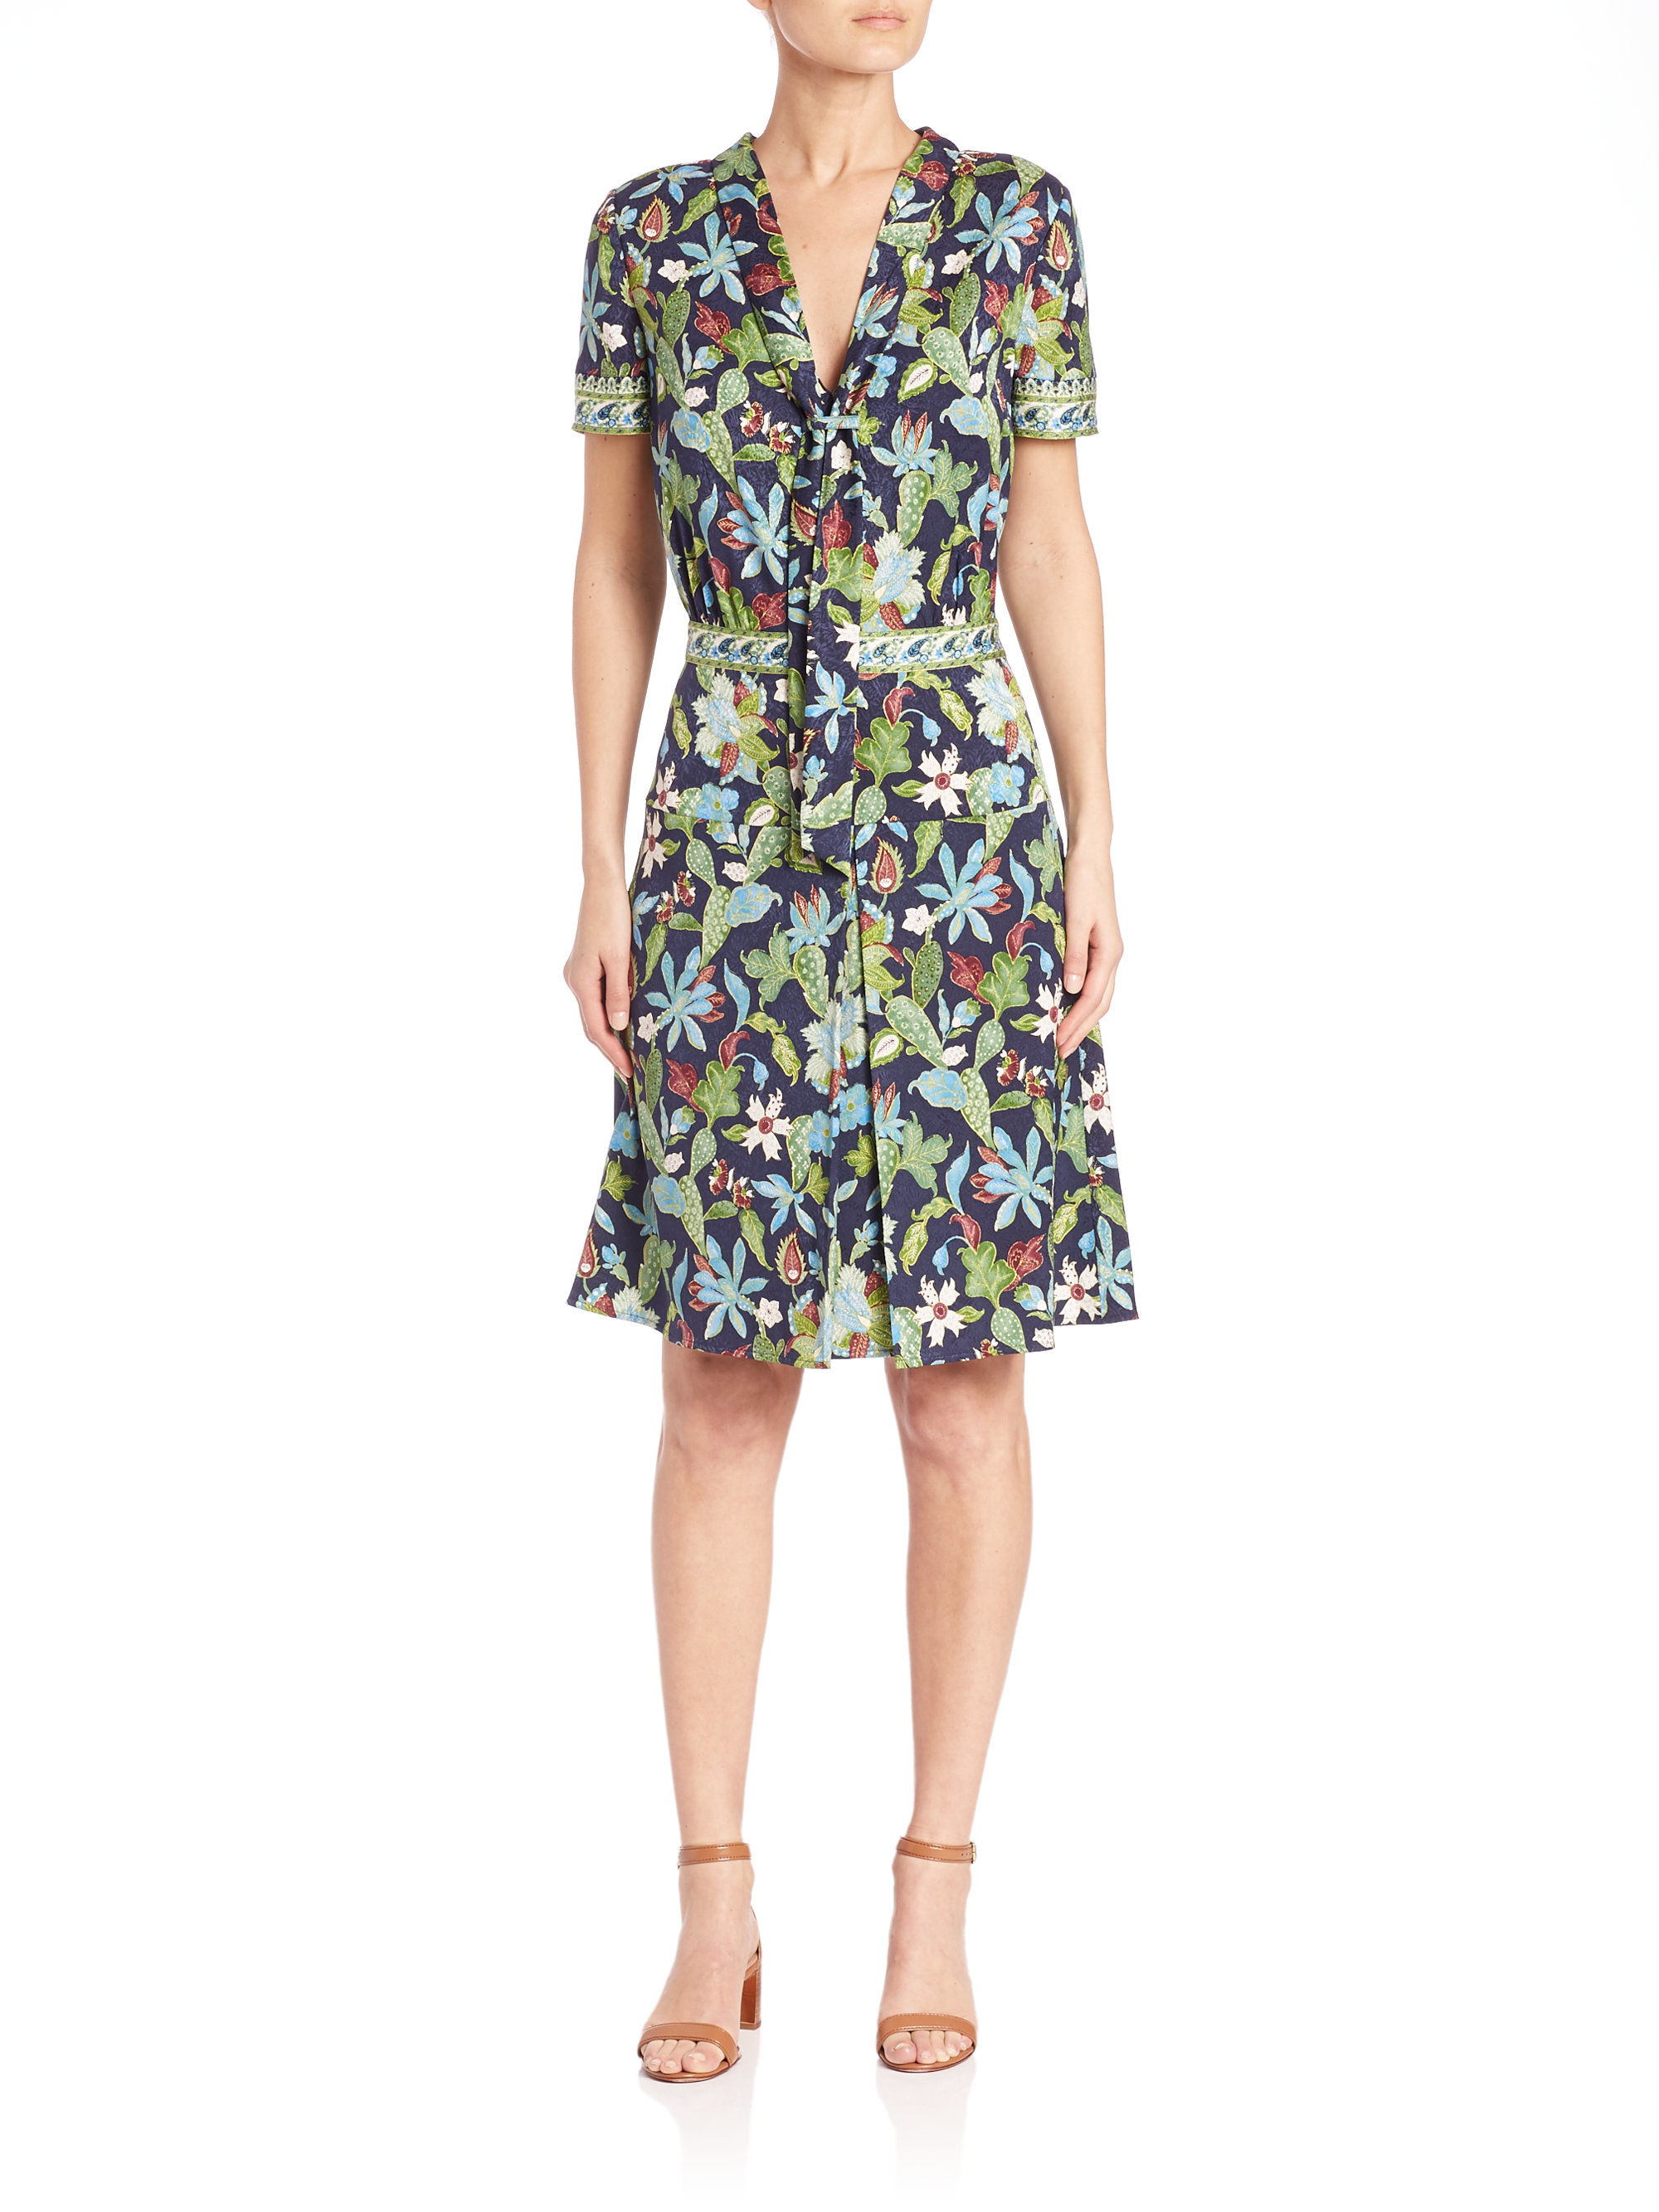 Tory burch floral print tie neck dress lyst for Tory burch fashion island